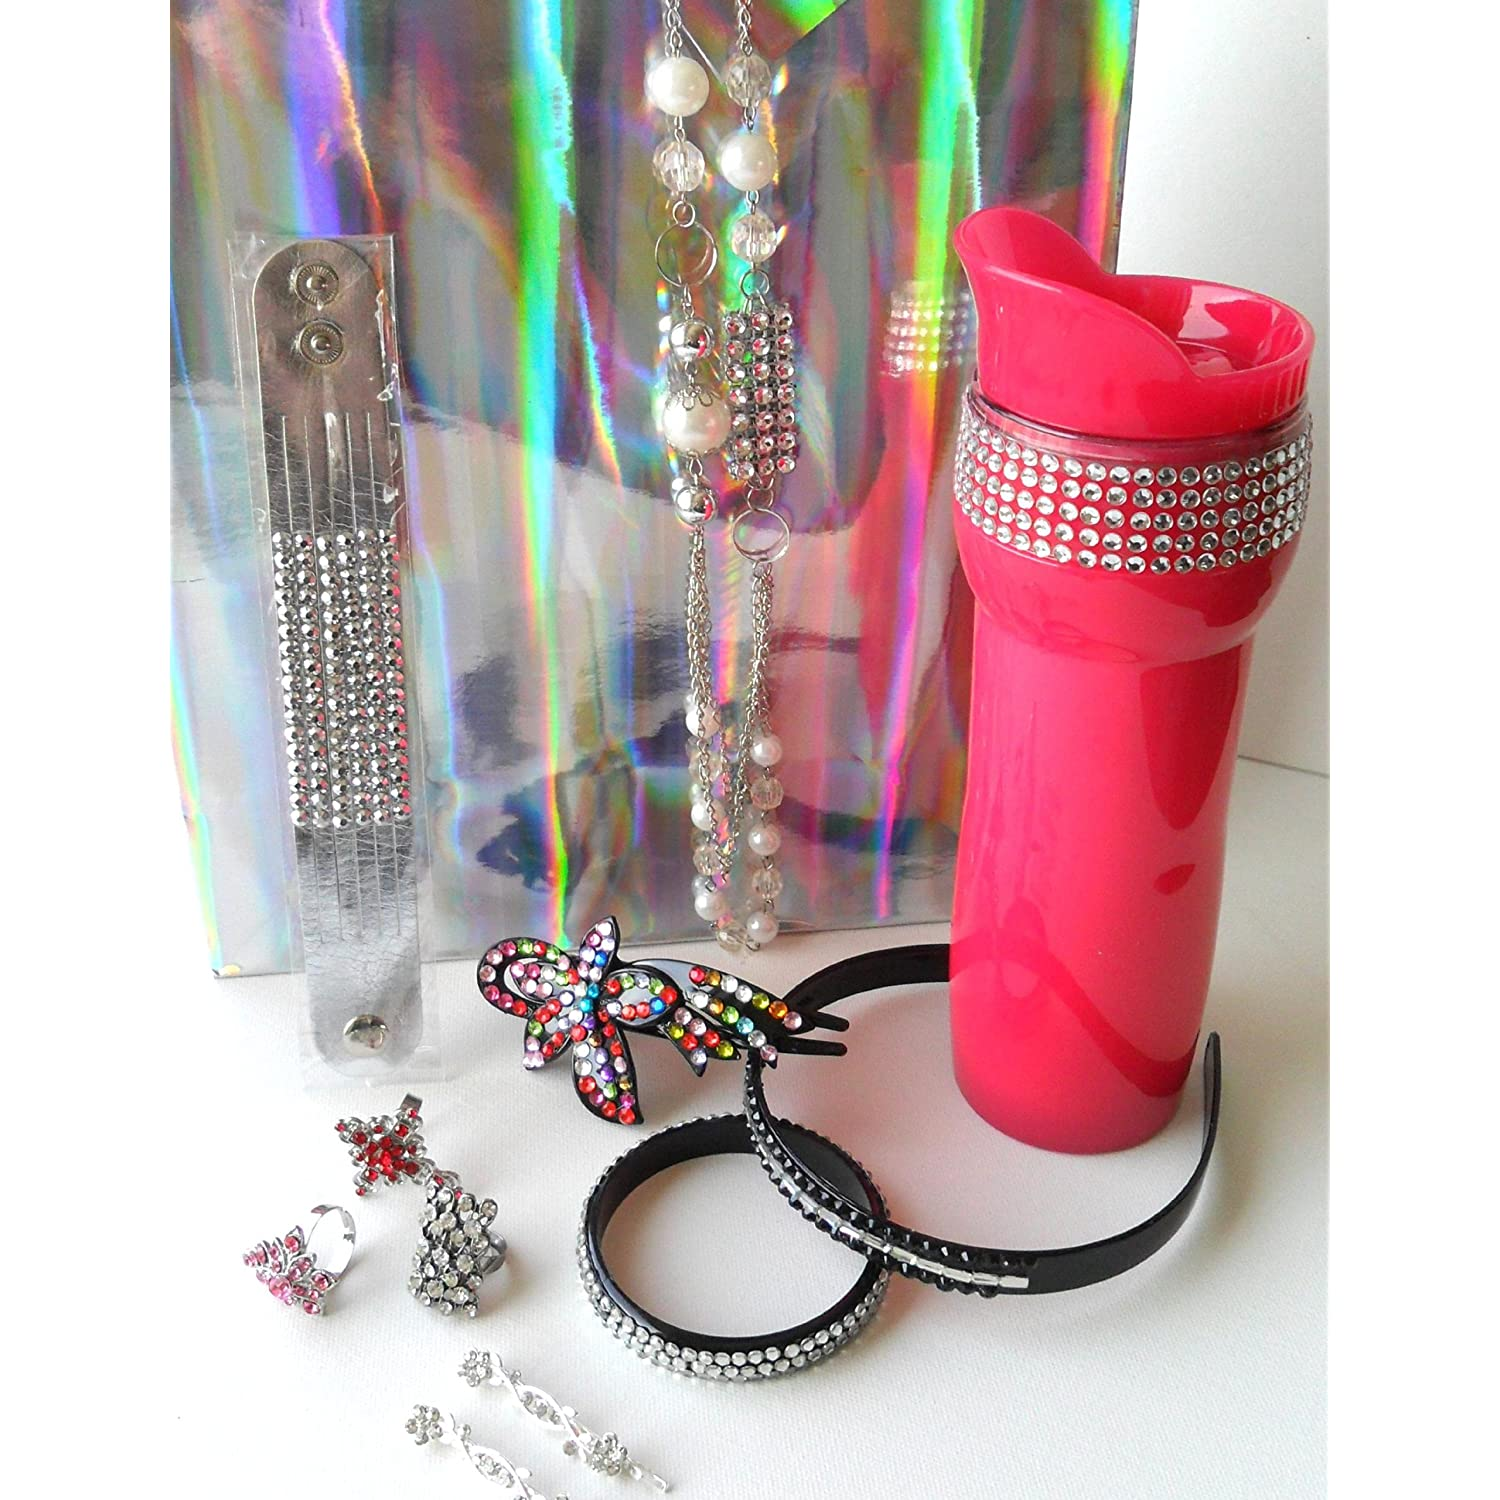 Rhinestone Bling Bling Gift Set 11 Pieces with Hot Pink Travel Coffee Tea Mug,Bracelet, Necklace &#038; Earrings,Bling Rings